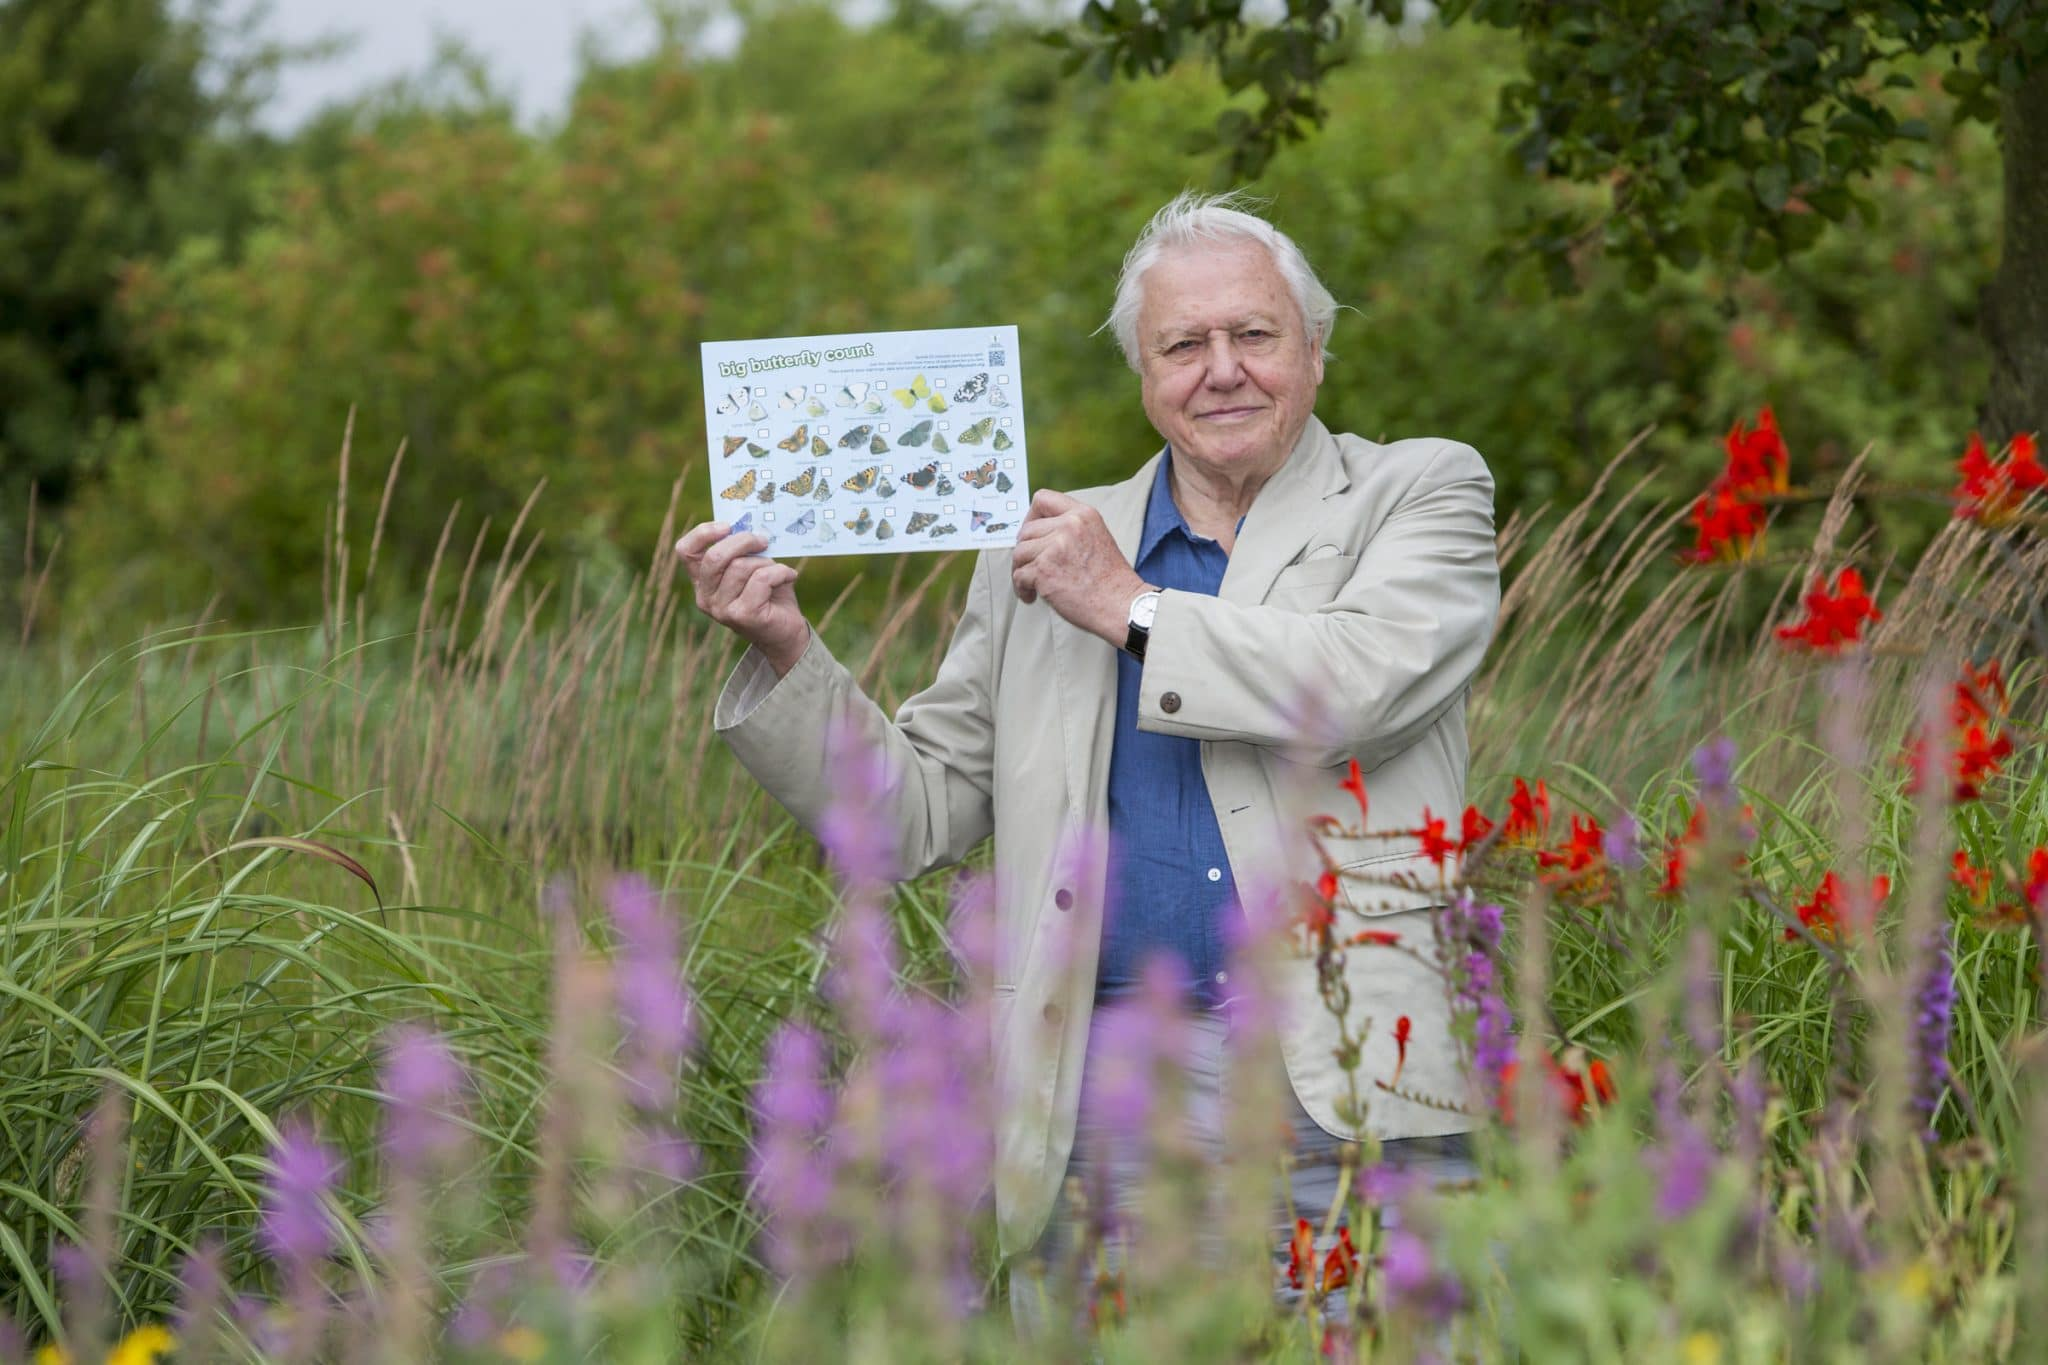 Sir David Attenborough launches the Big Butterfly Count 2015, at London Wetland Centre, on 17 July 2015.